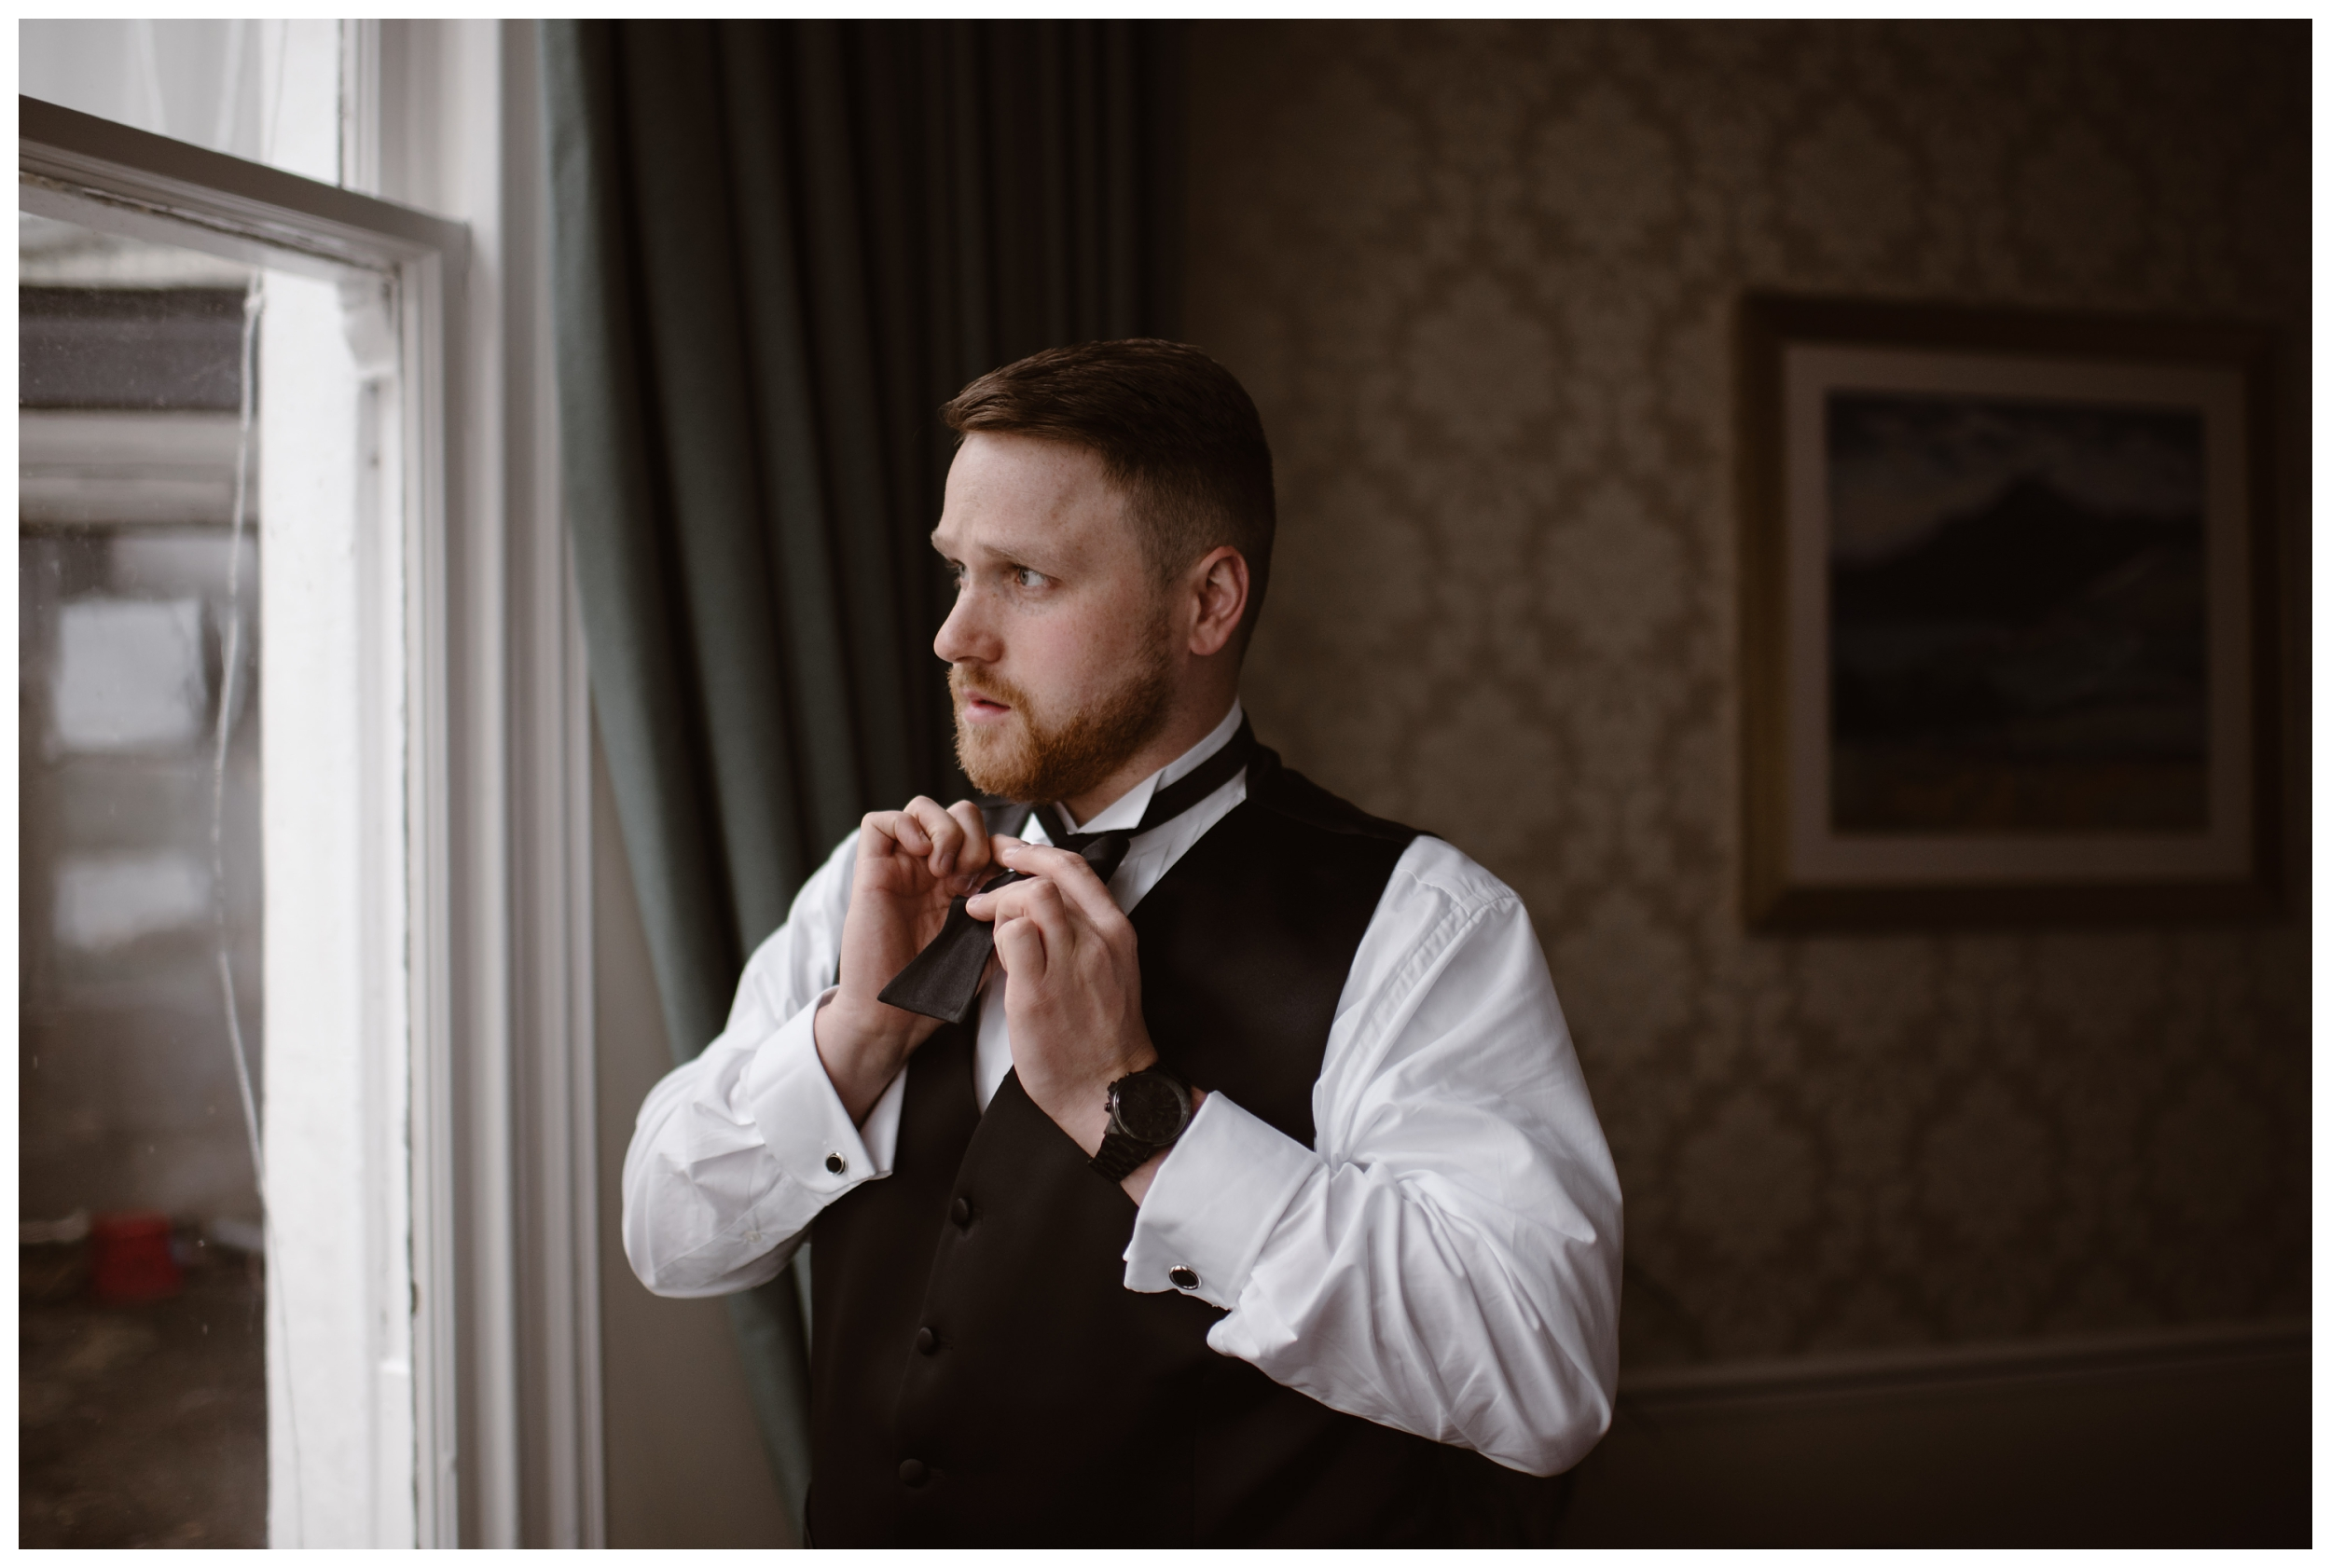 Daniel ties his tie in an old hotel outside Kilchurn Castle in Scotland before his destination elopement. Photo by Maddie Mae, Adventure Instead.